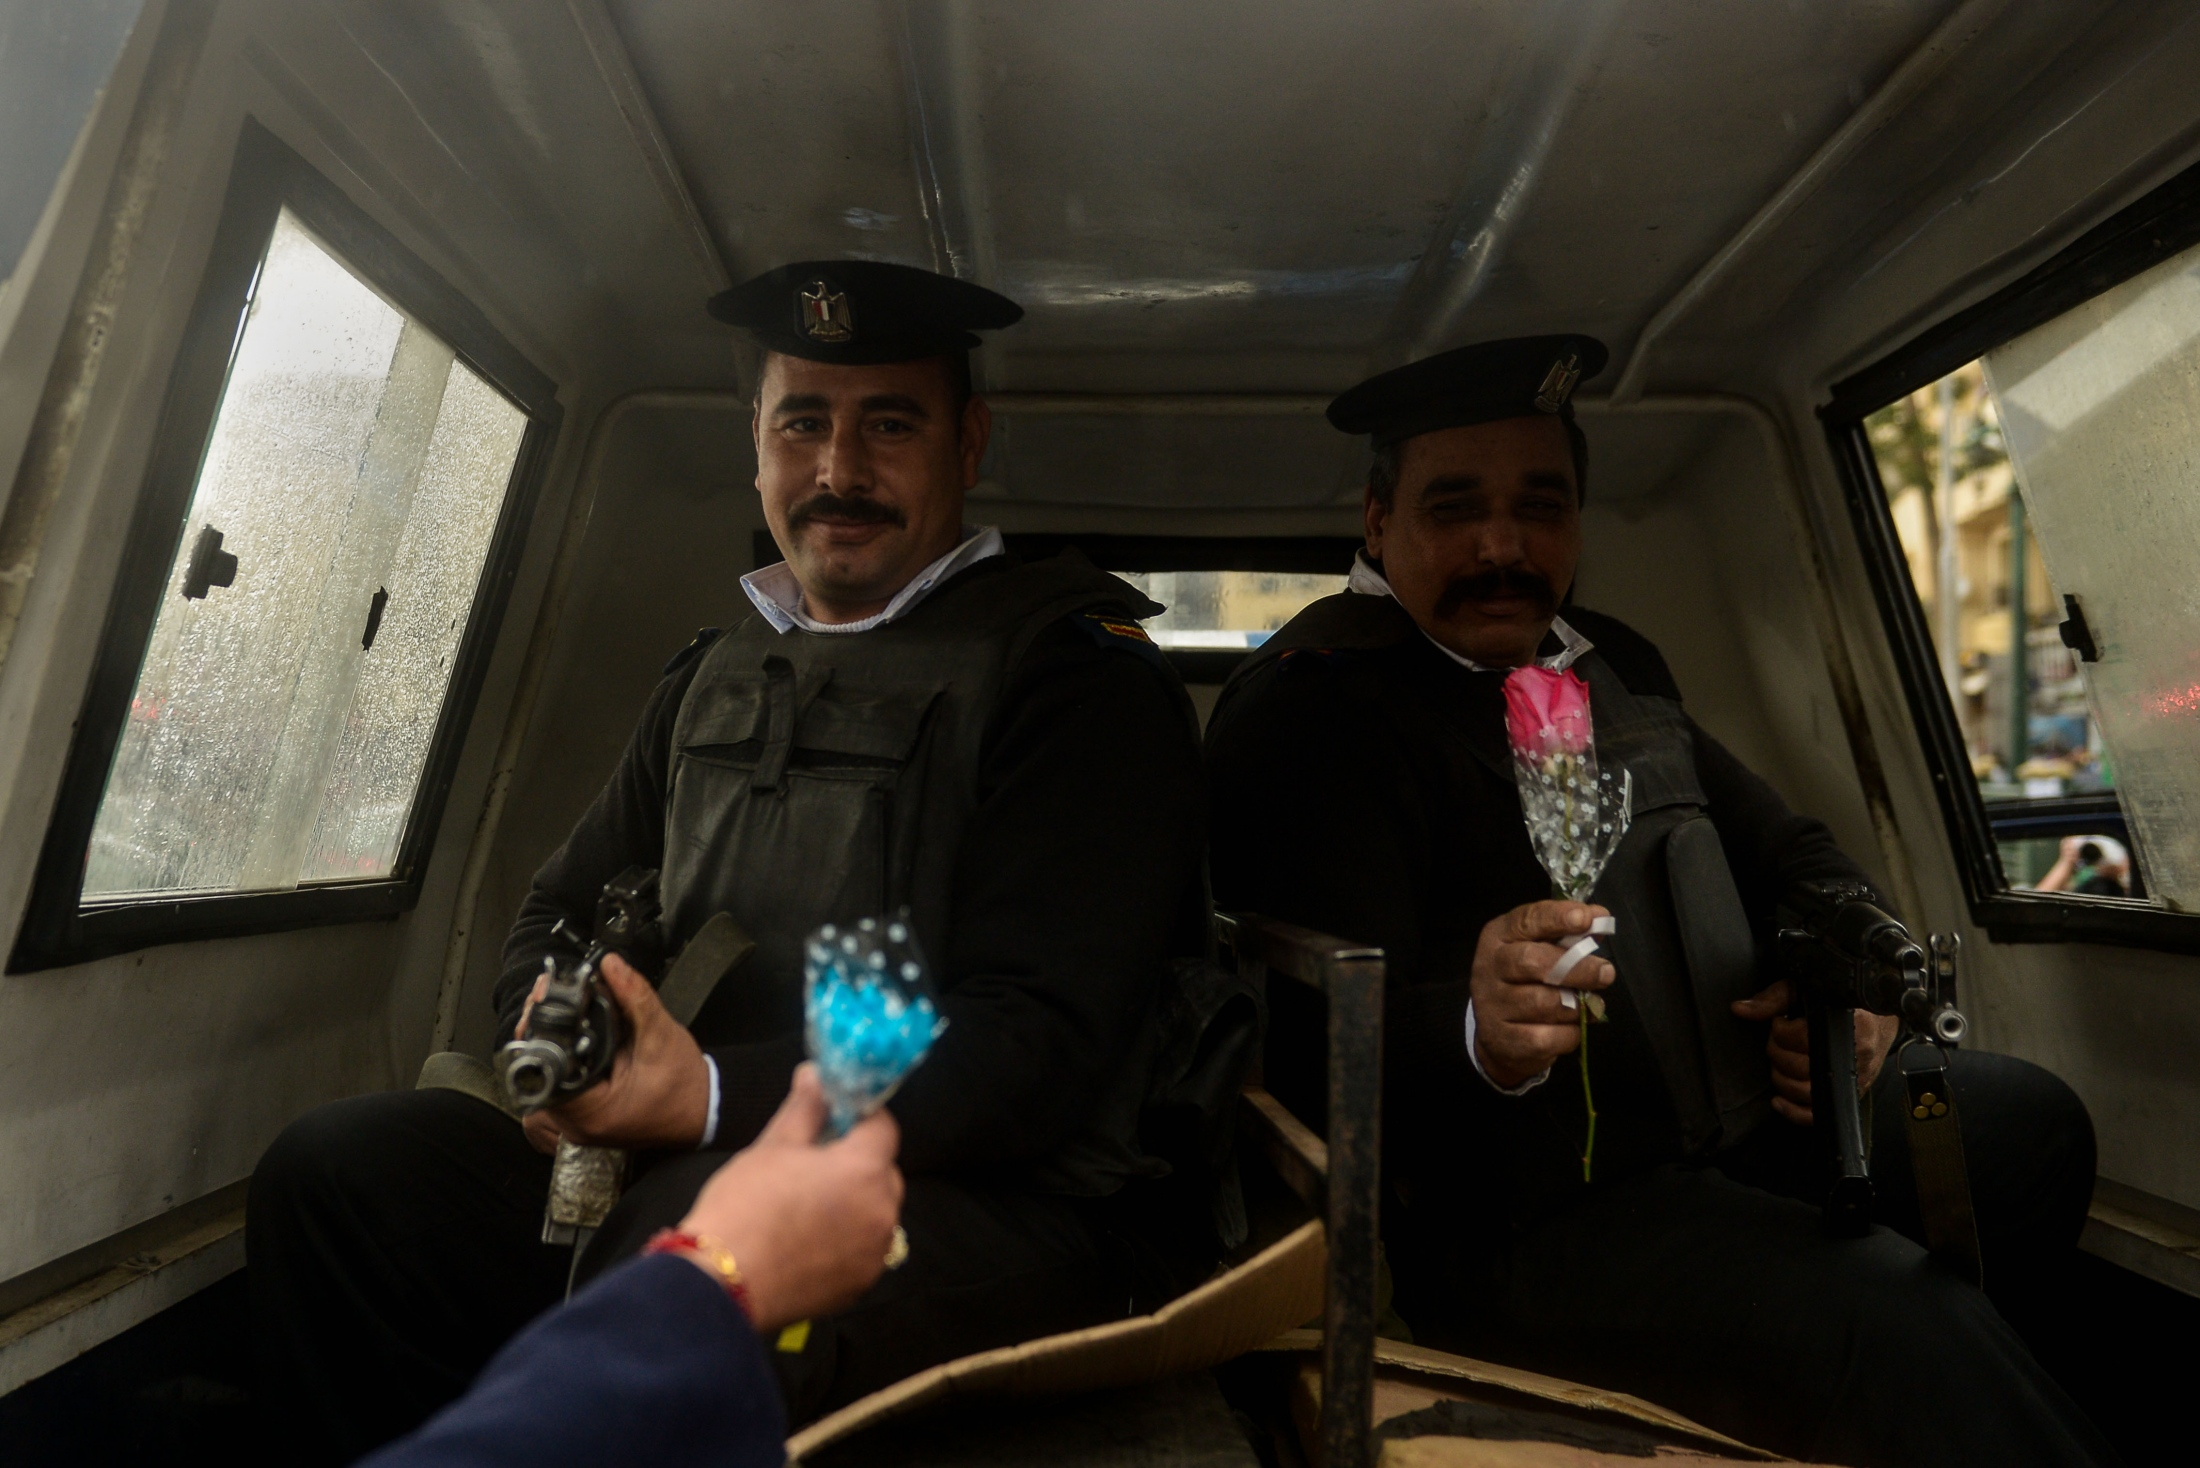 Egyptian policemen receive flower on Police Day, which falls on Jan.25. The day also marks the anniversary of the 2011 uprising in Cairo's Tahrir square, Cairo, Egypt.